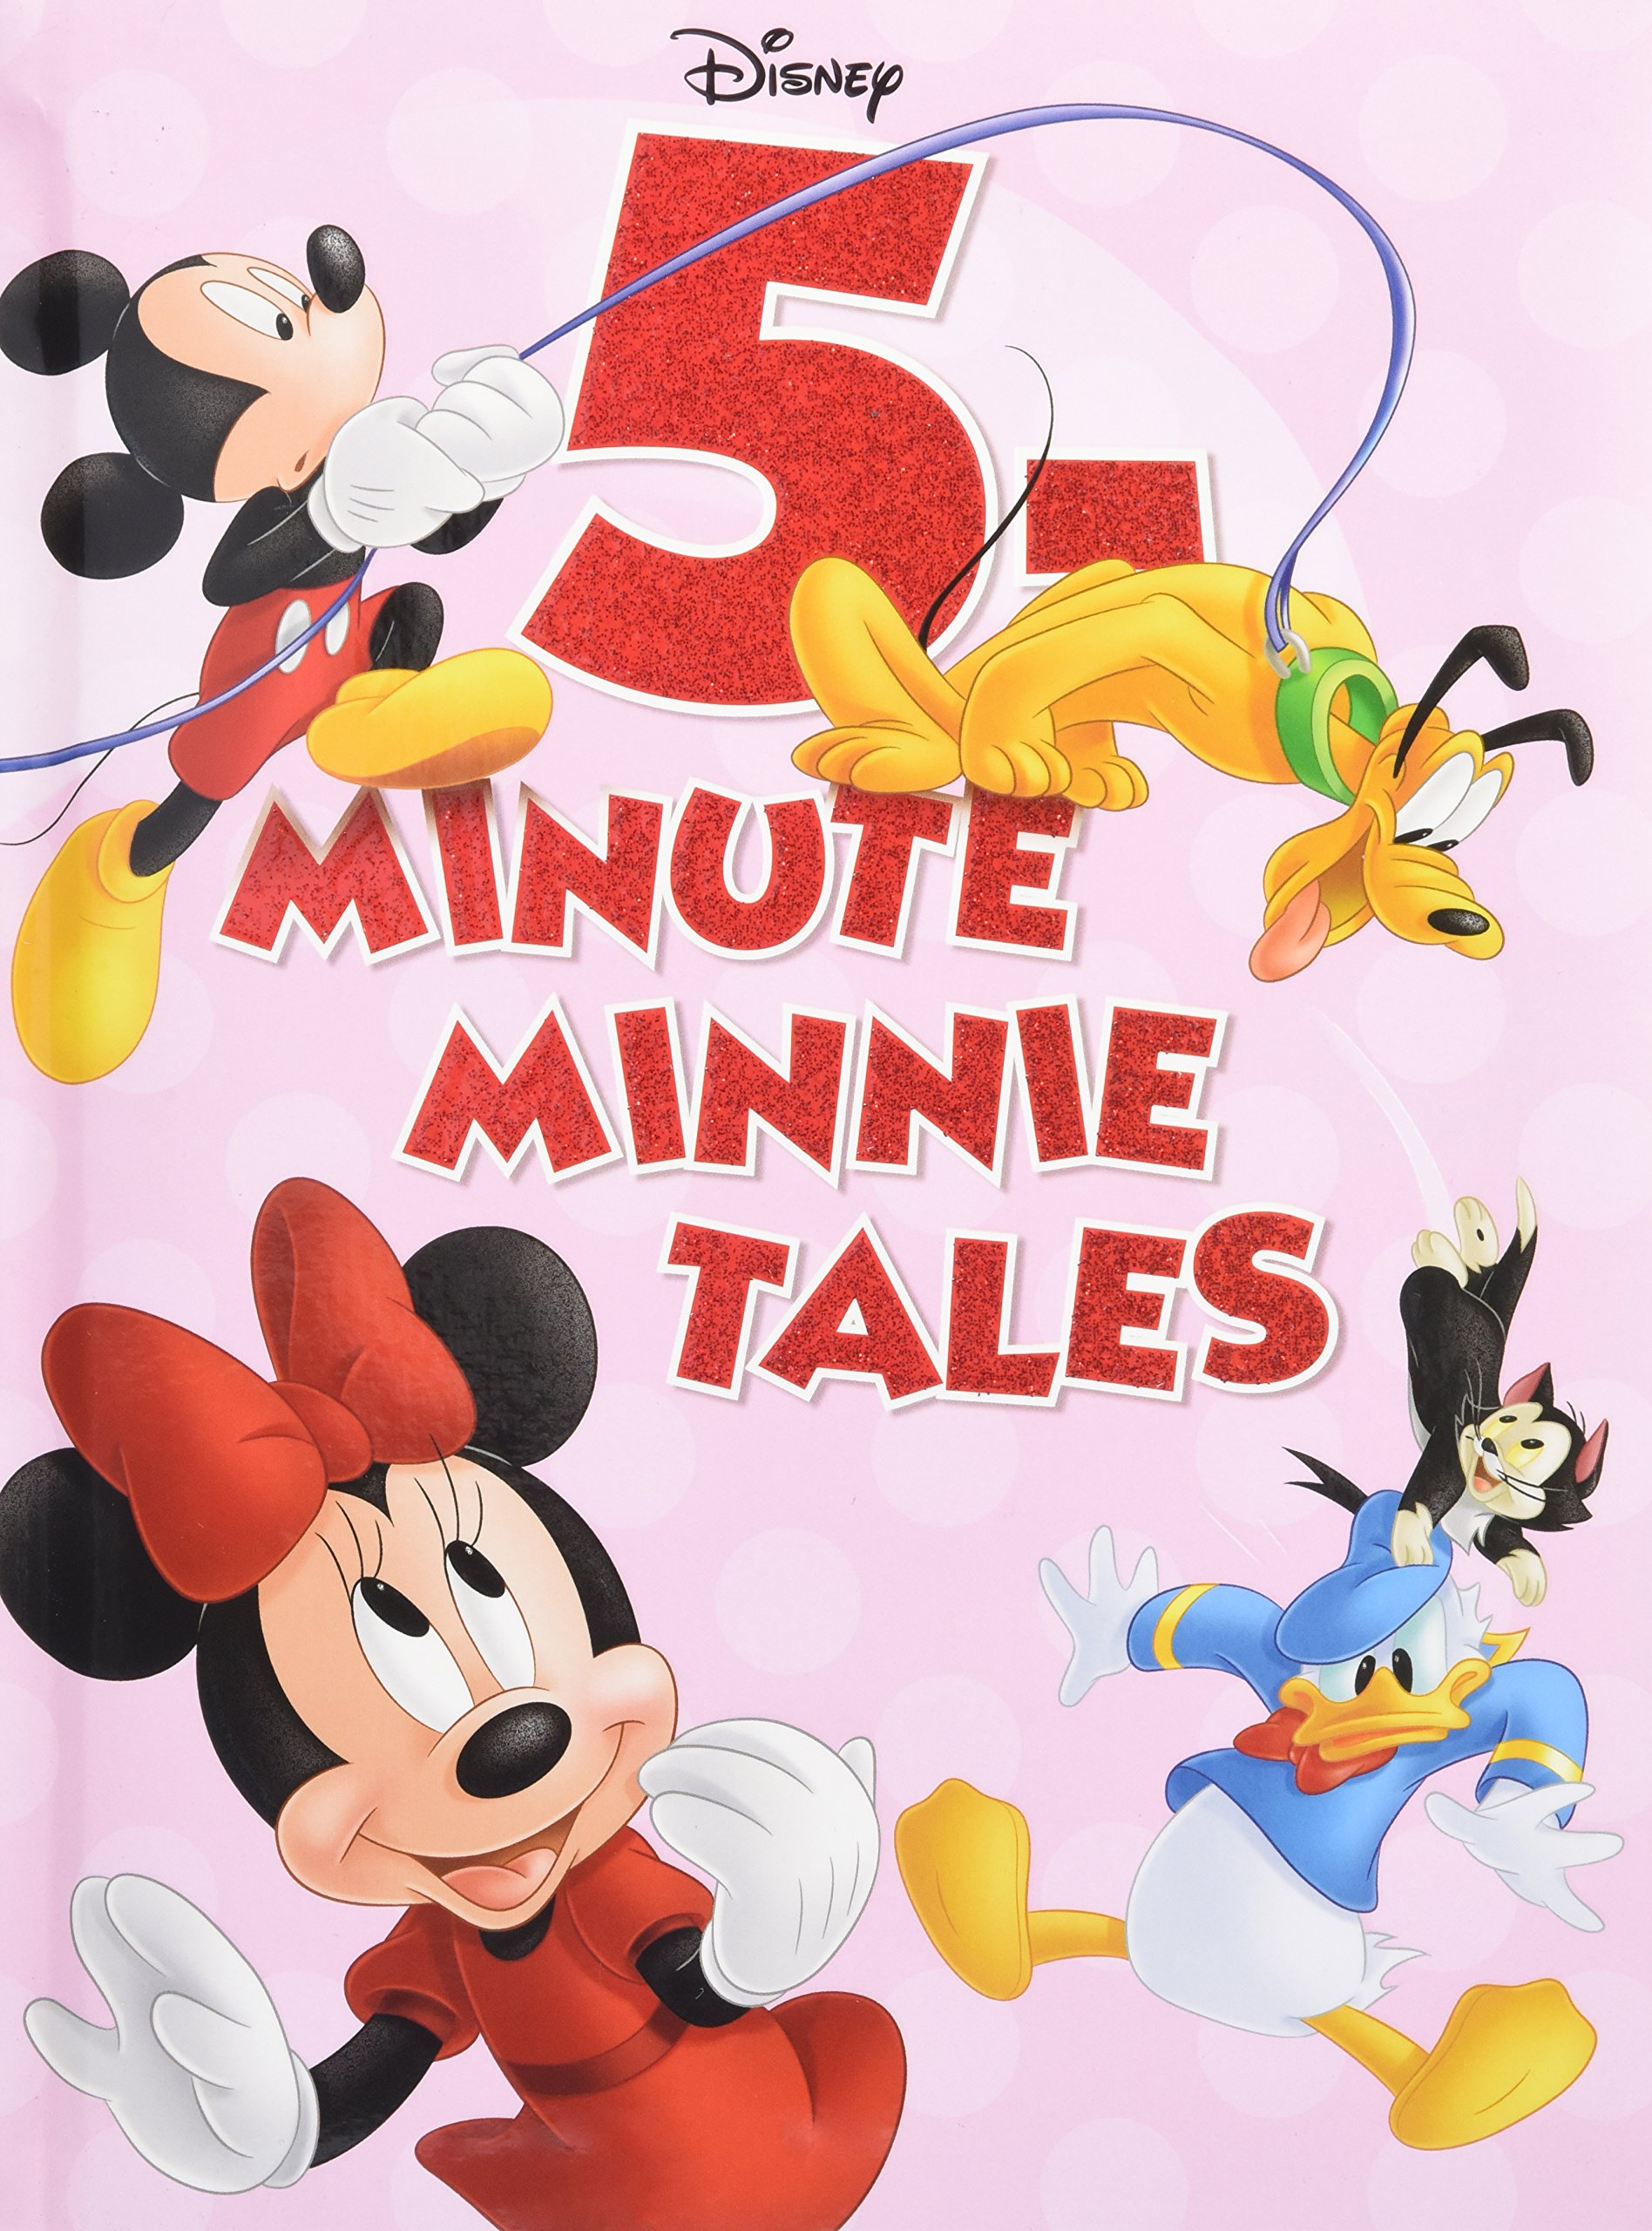 5 Minute Minnie Tales 5 Minute Stories Disney Book Group